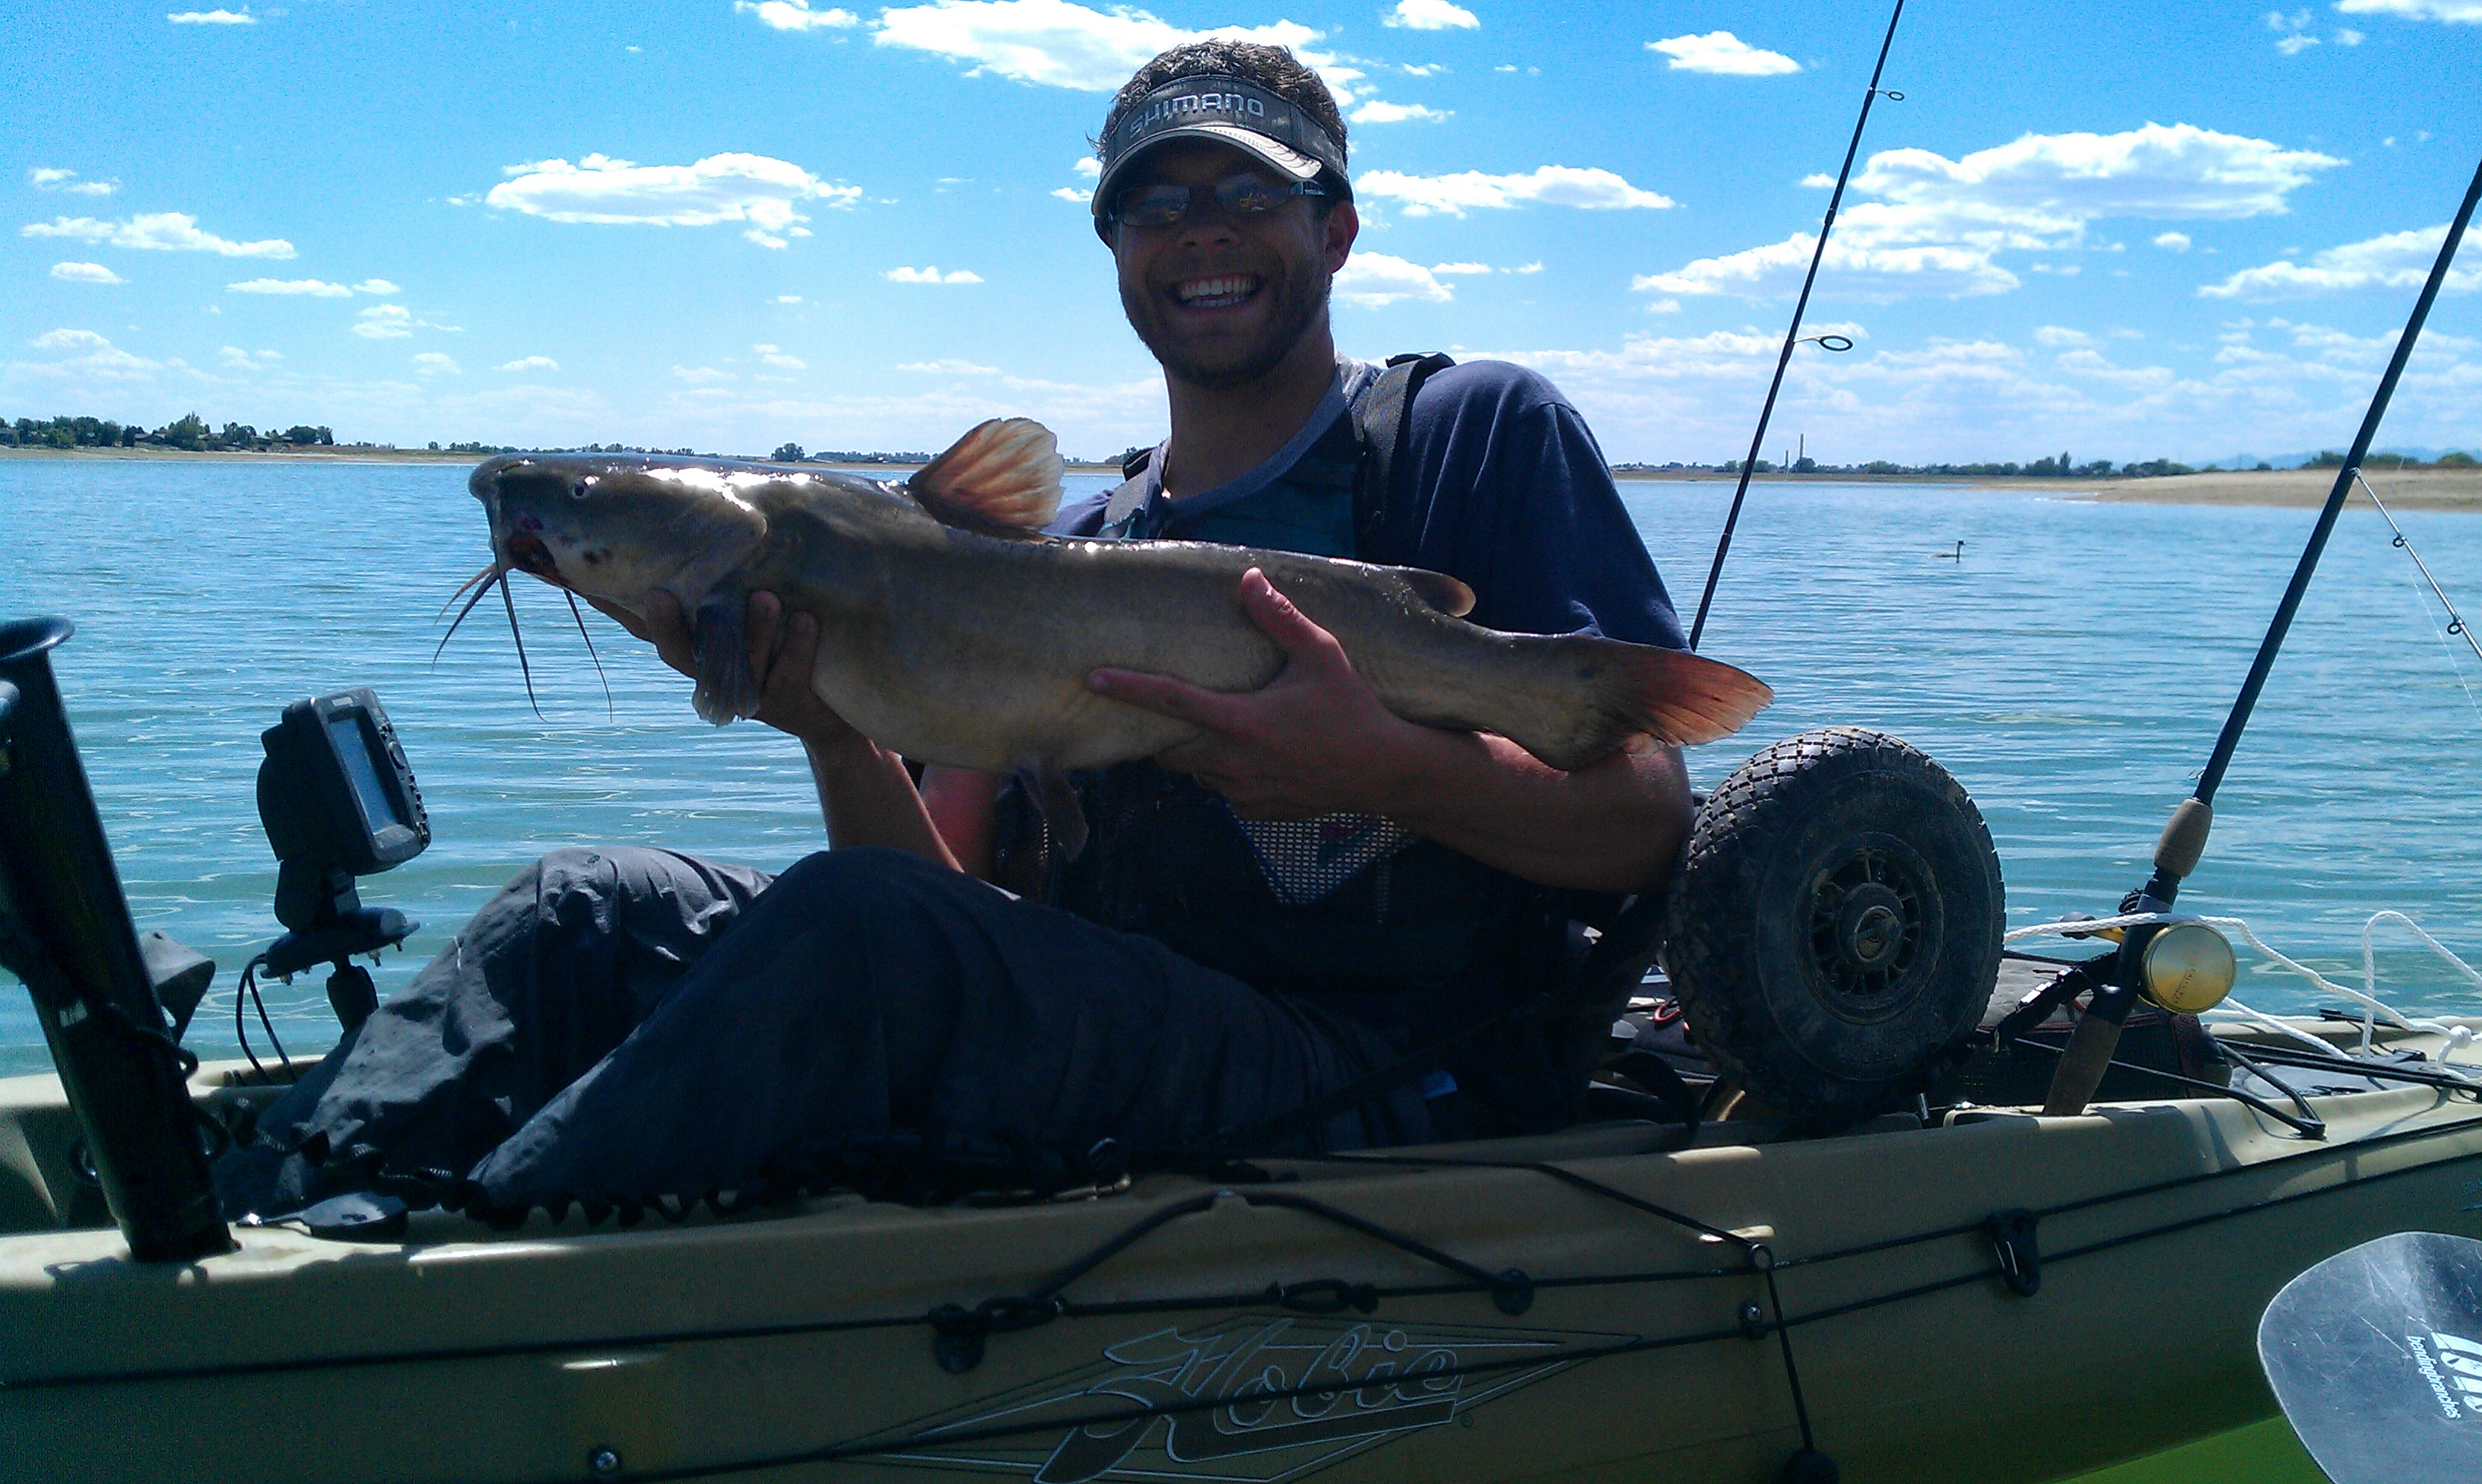 Patrick Rogers-Ostema Fort Collins CO  I caught this beautiful channel catfish while trolling an